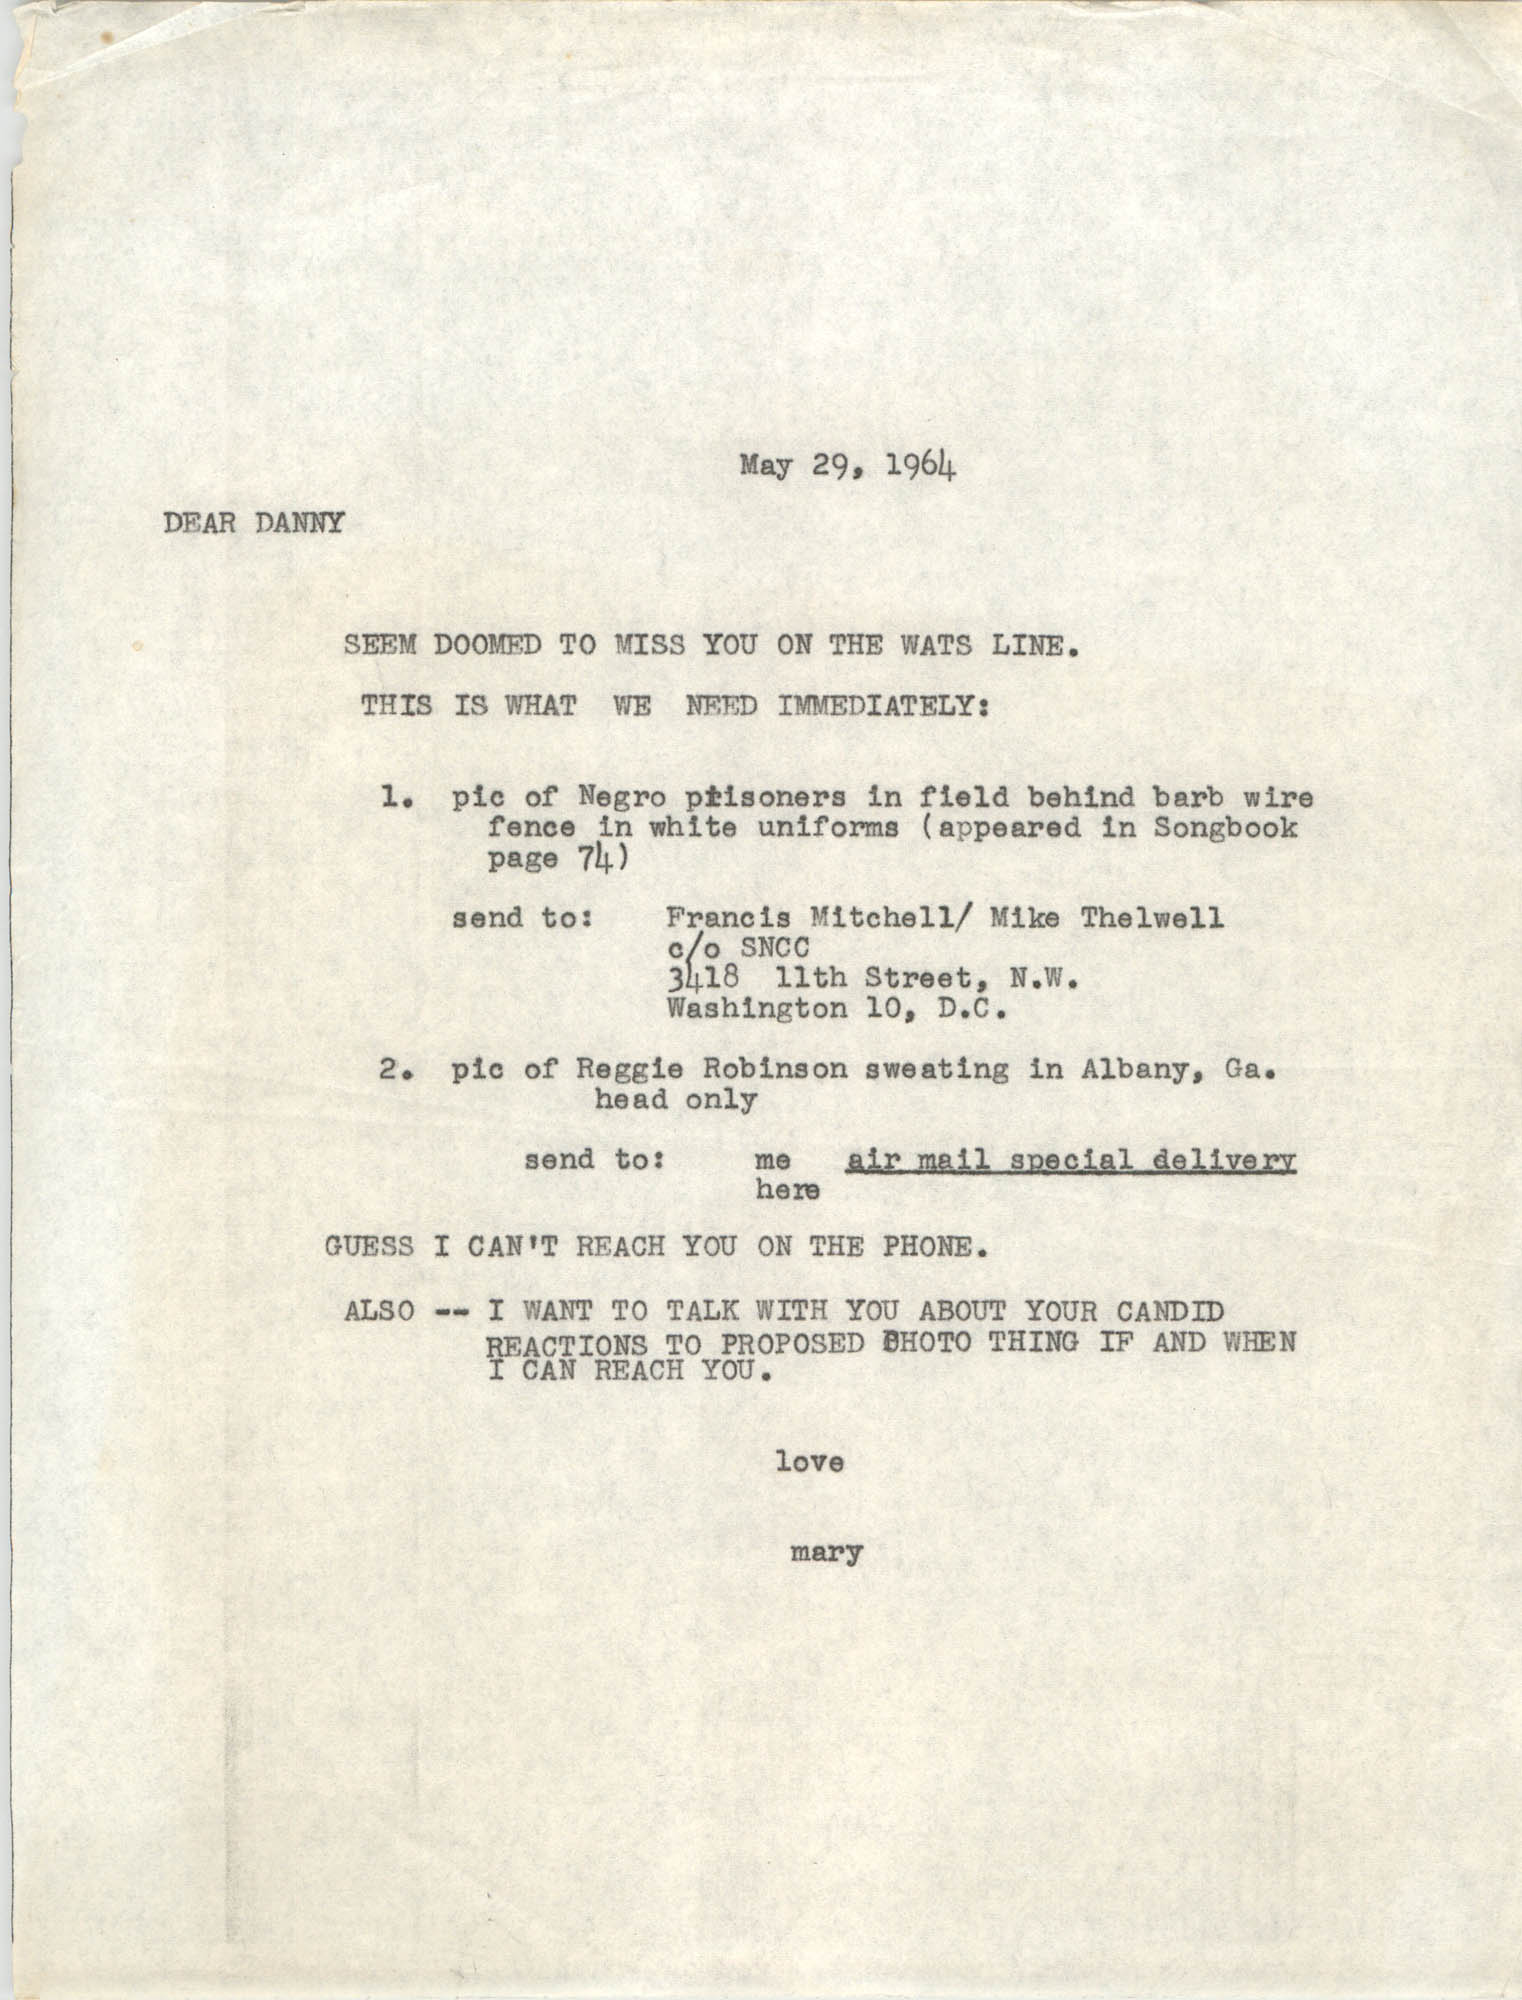 Letter from Mary E. King to